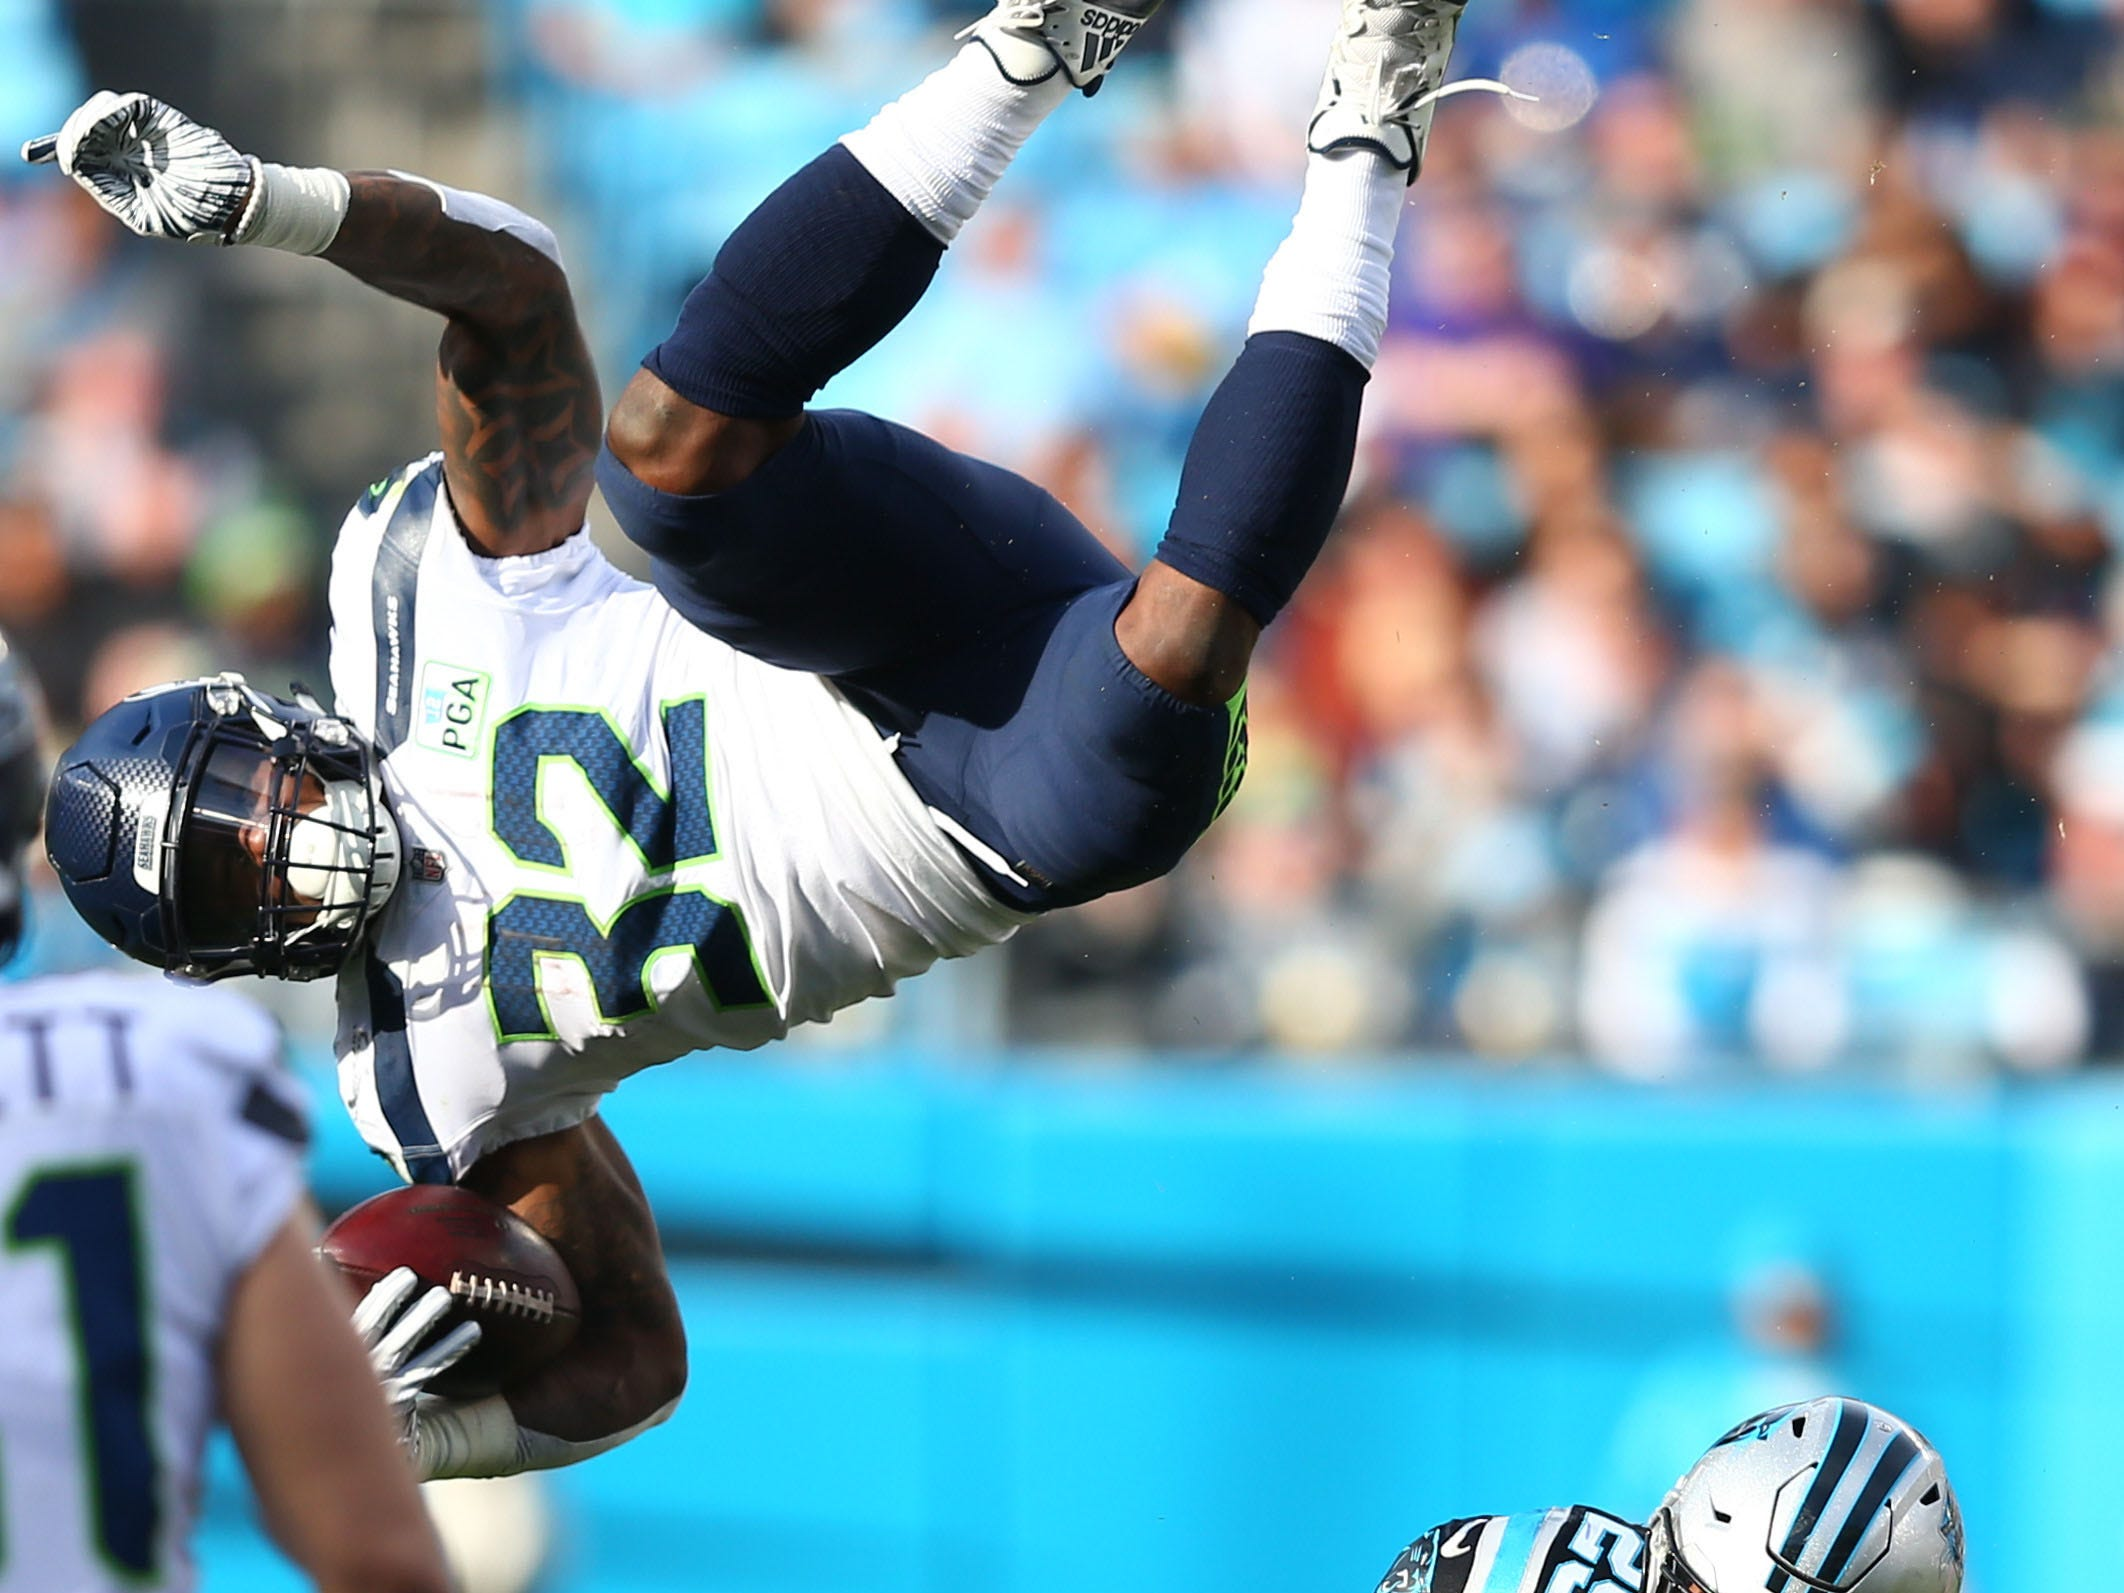 Carolina Panthers strong safety Eric Reid knocks Seattle Seahawks running back Chris Carson in the air during a Week 12 game at Bank of America Stadium.